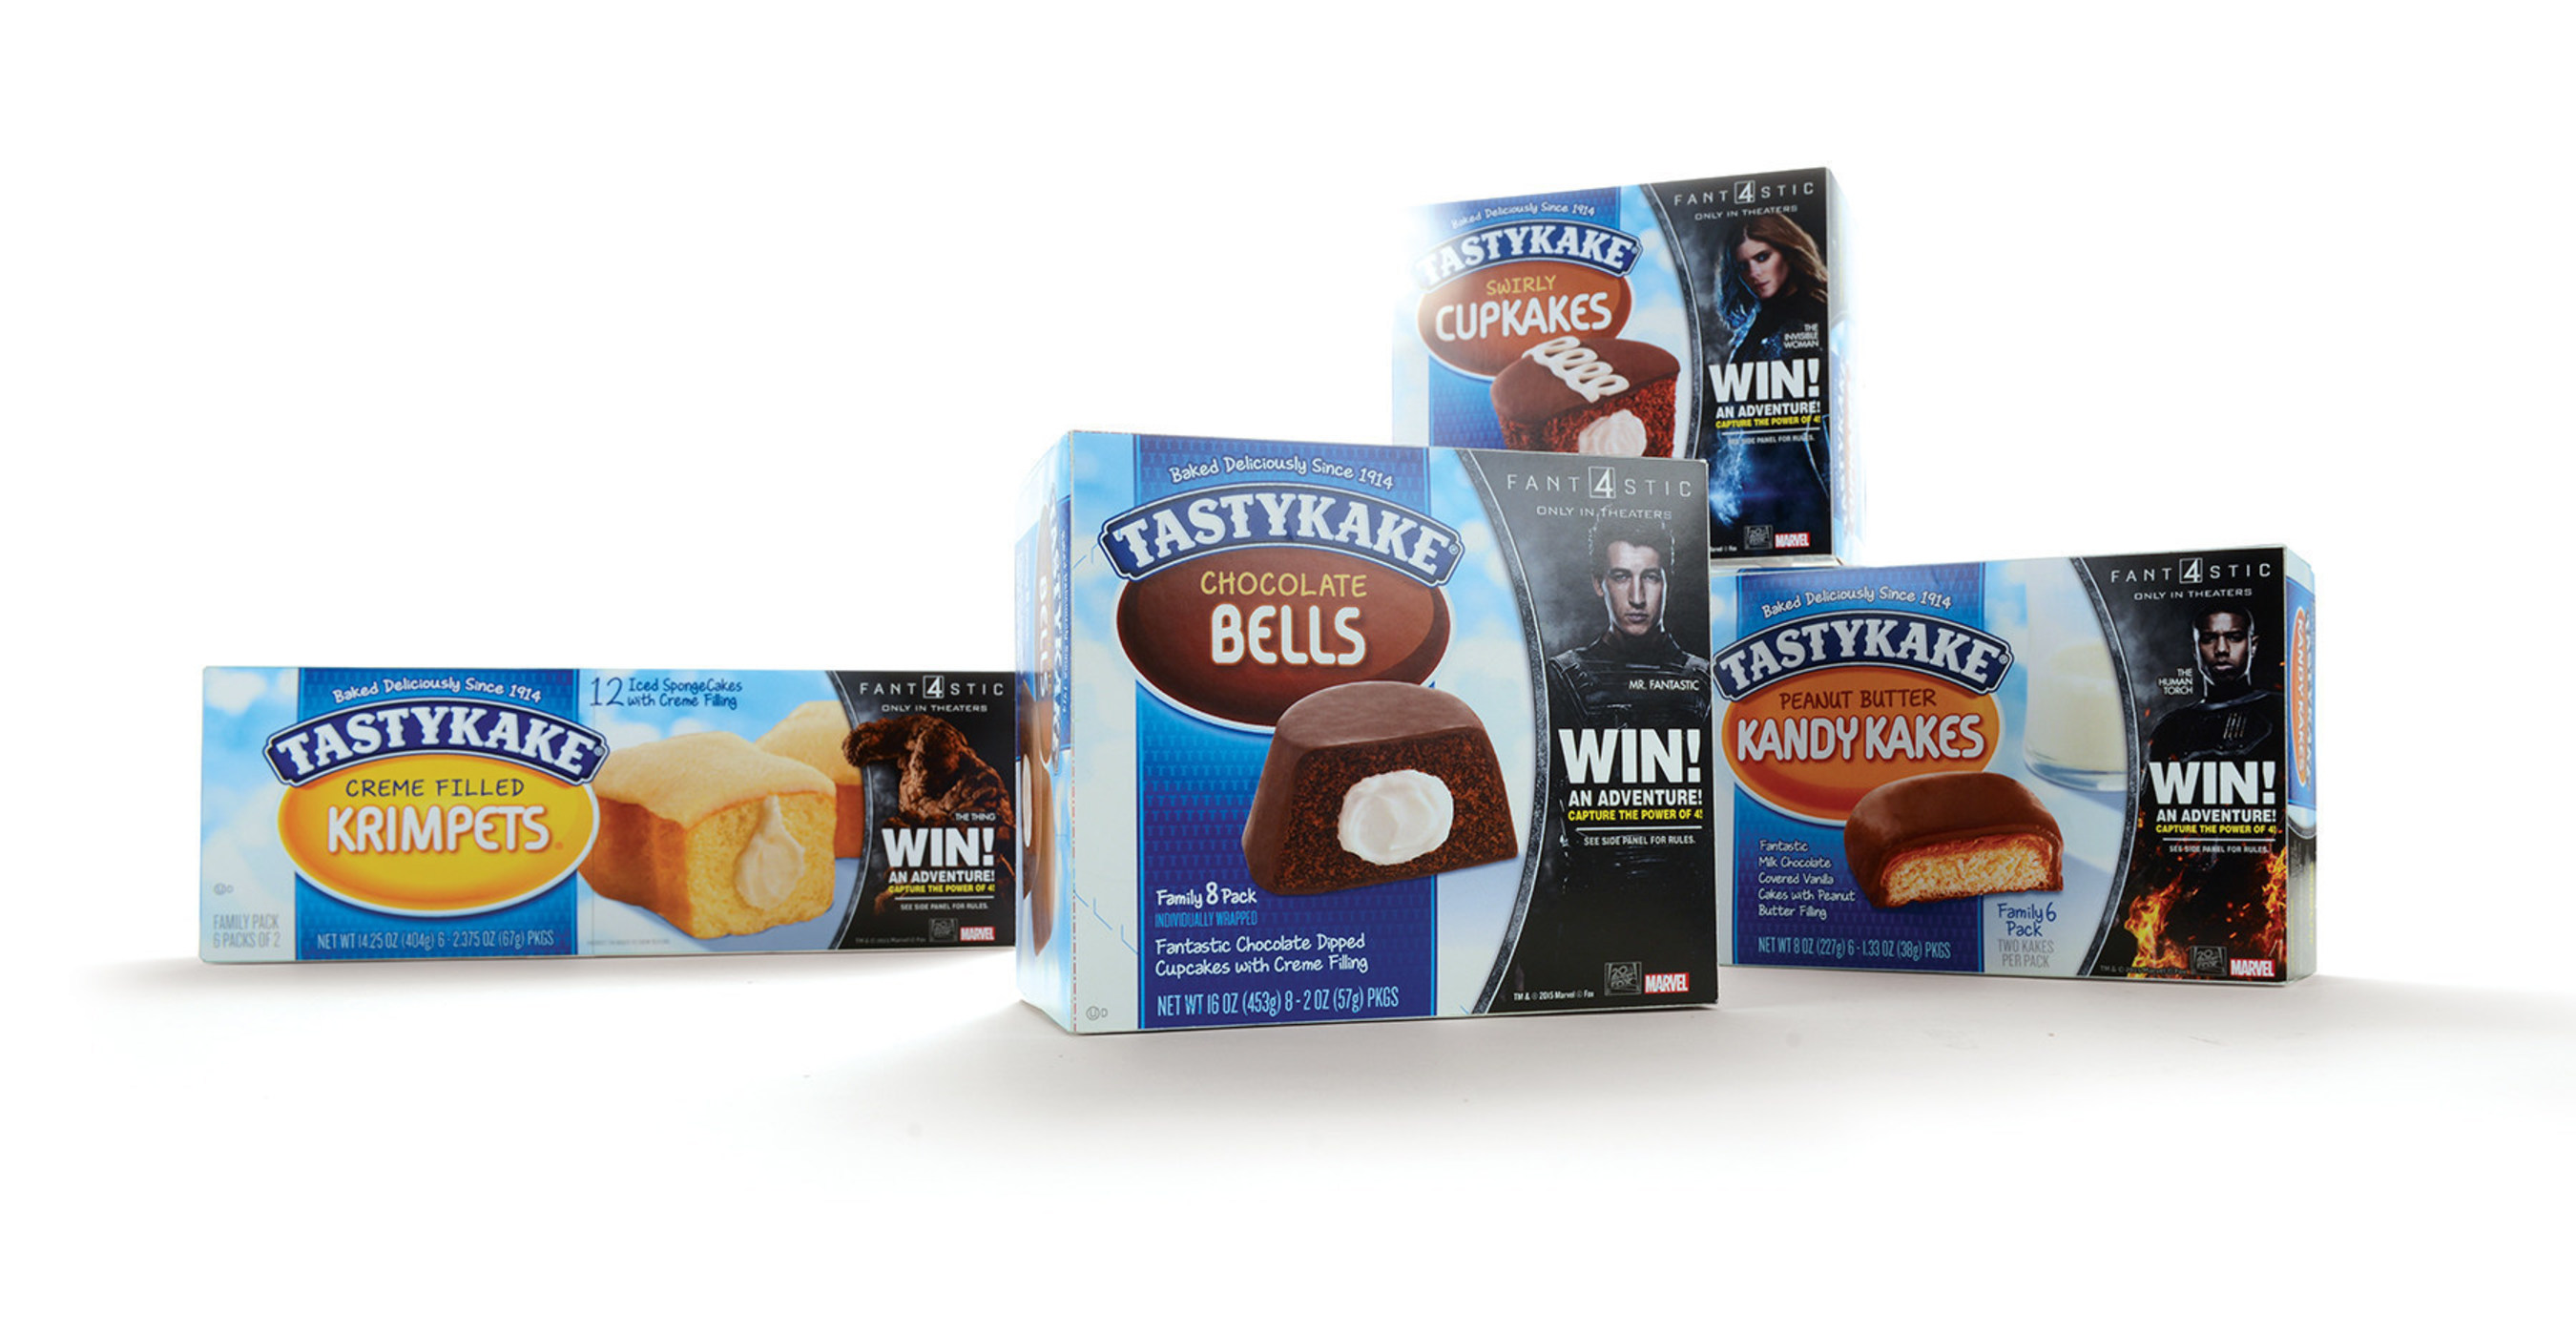 Tastykake Captures The Power Of Four With Fantastic Four Partnership